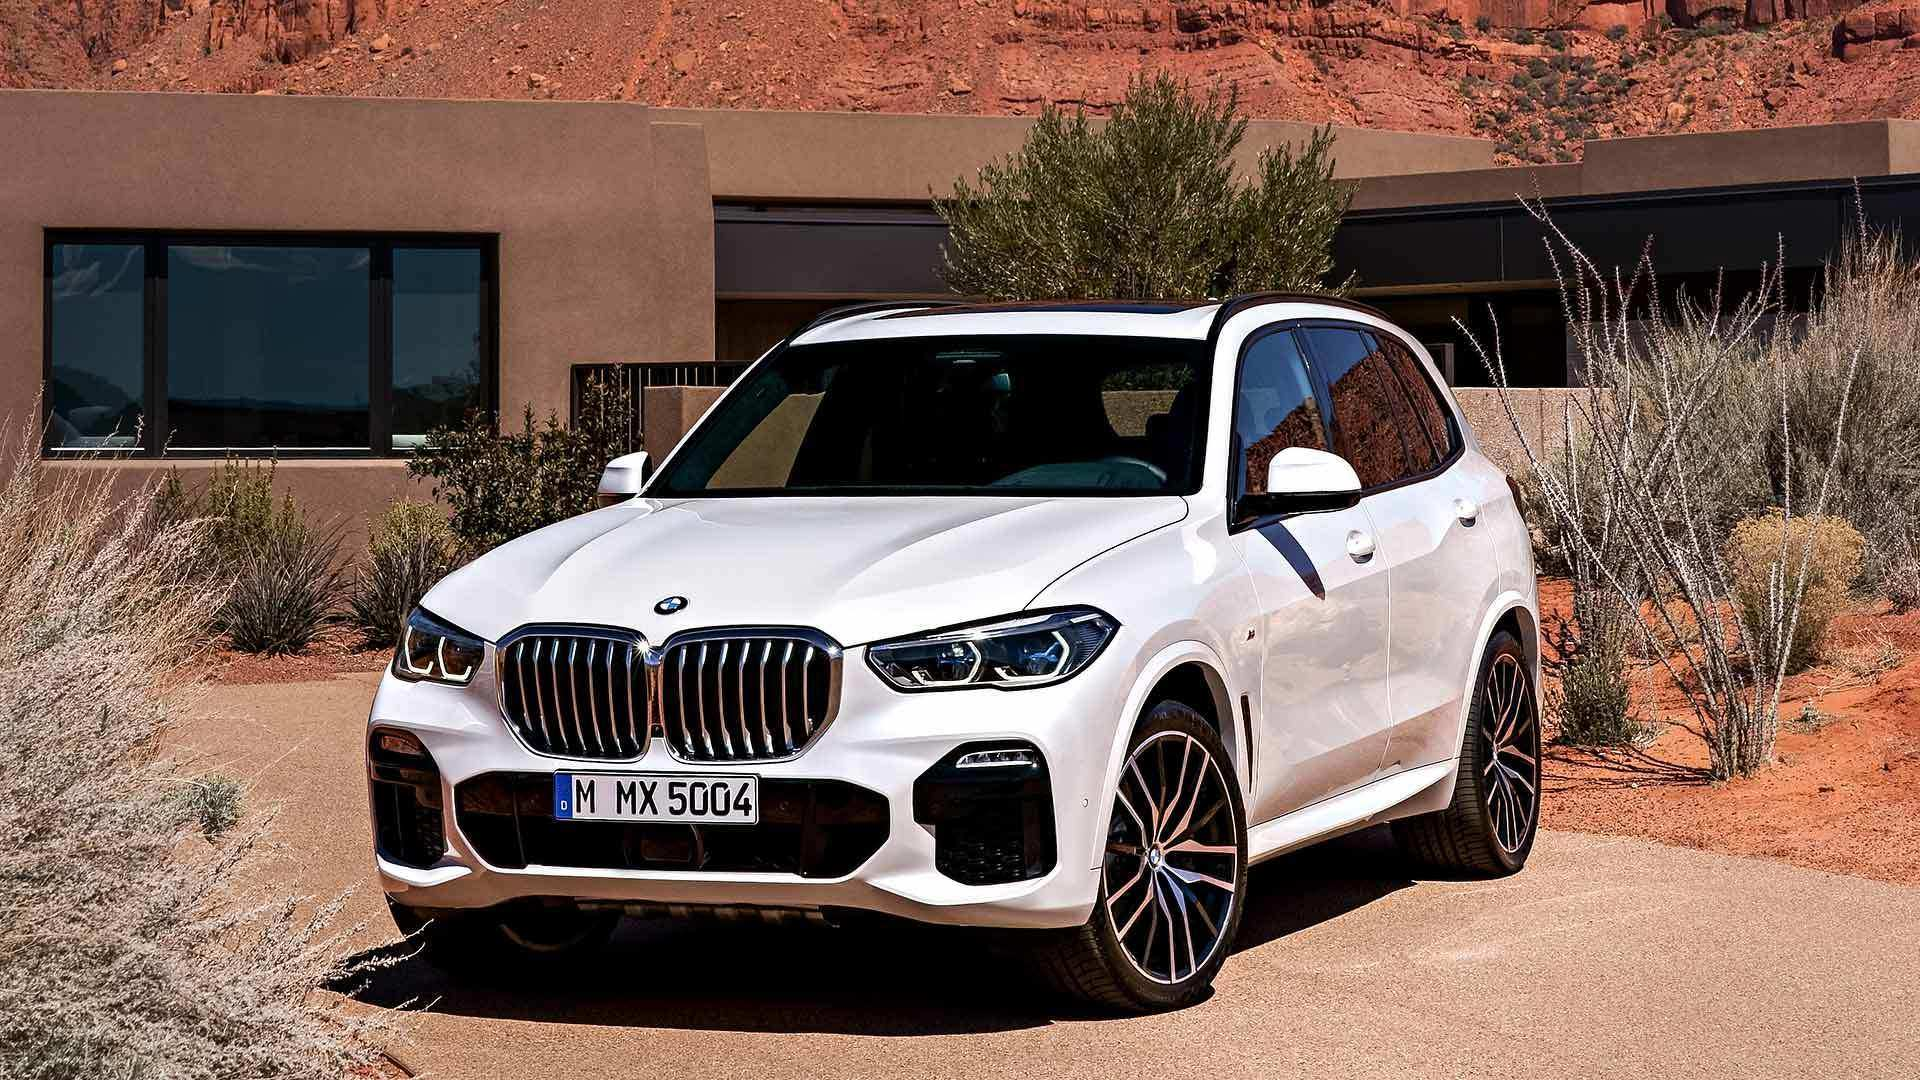 52 All New 2019 Bmw Suv Exterior with 2019 Bmw Suv